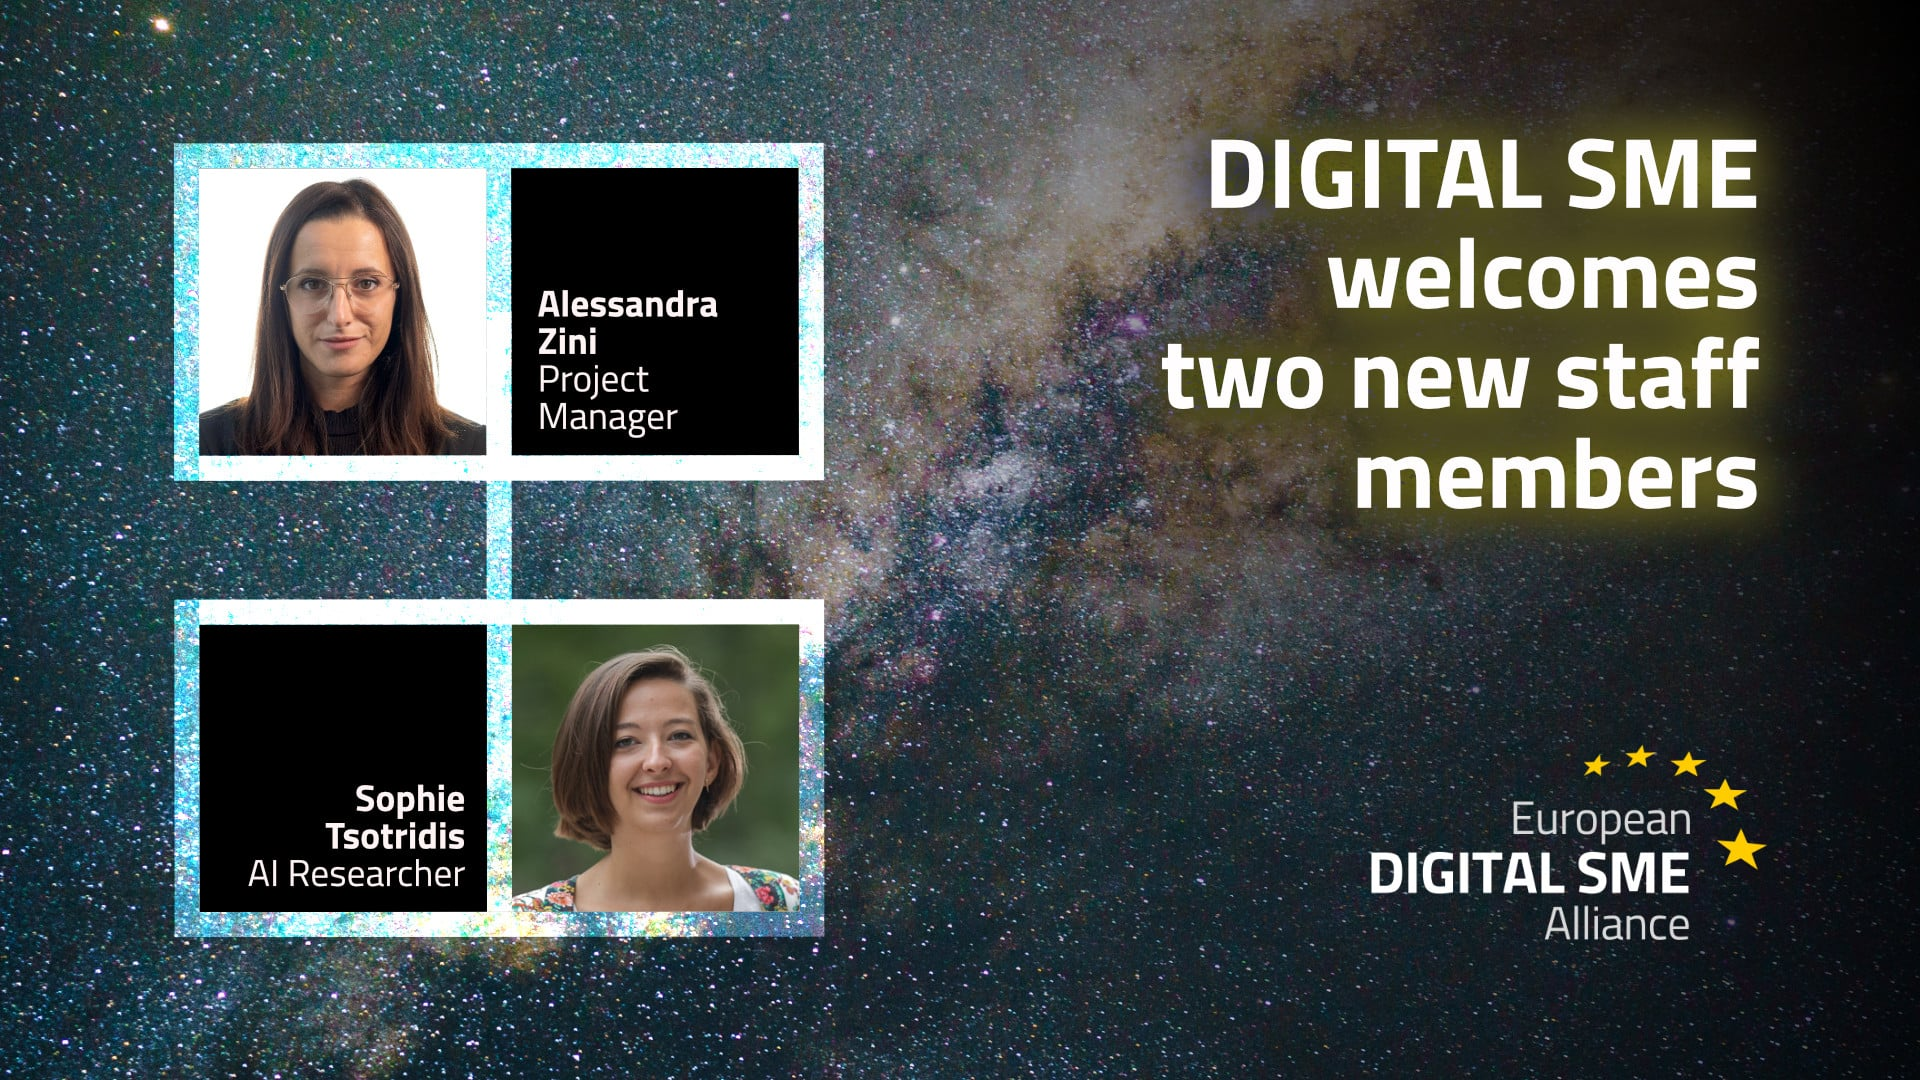 DIGITAL SME's Brussels office welcomes two new staff members